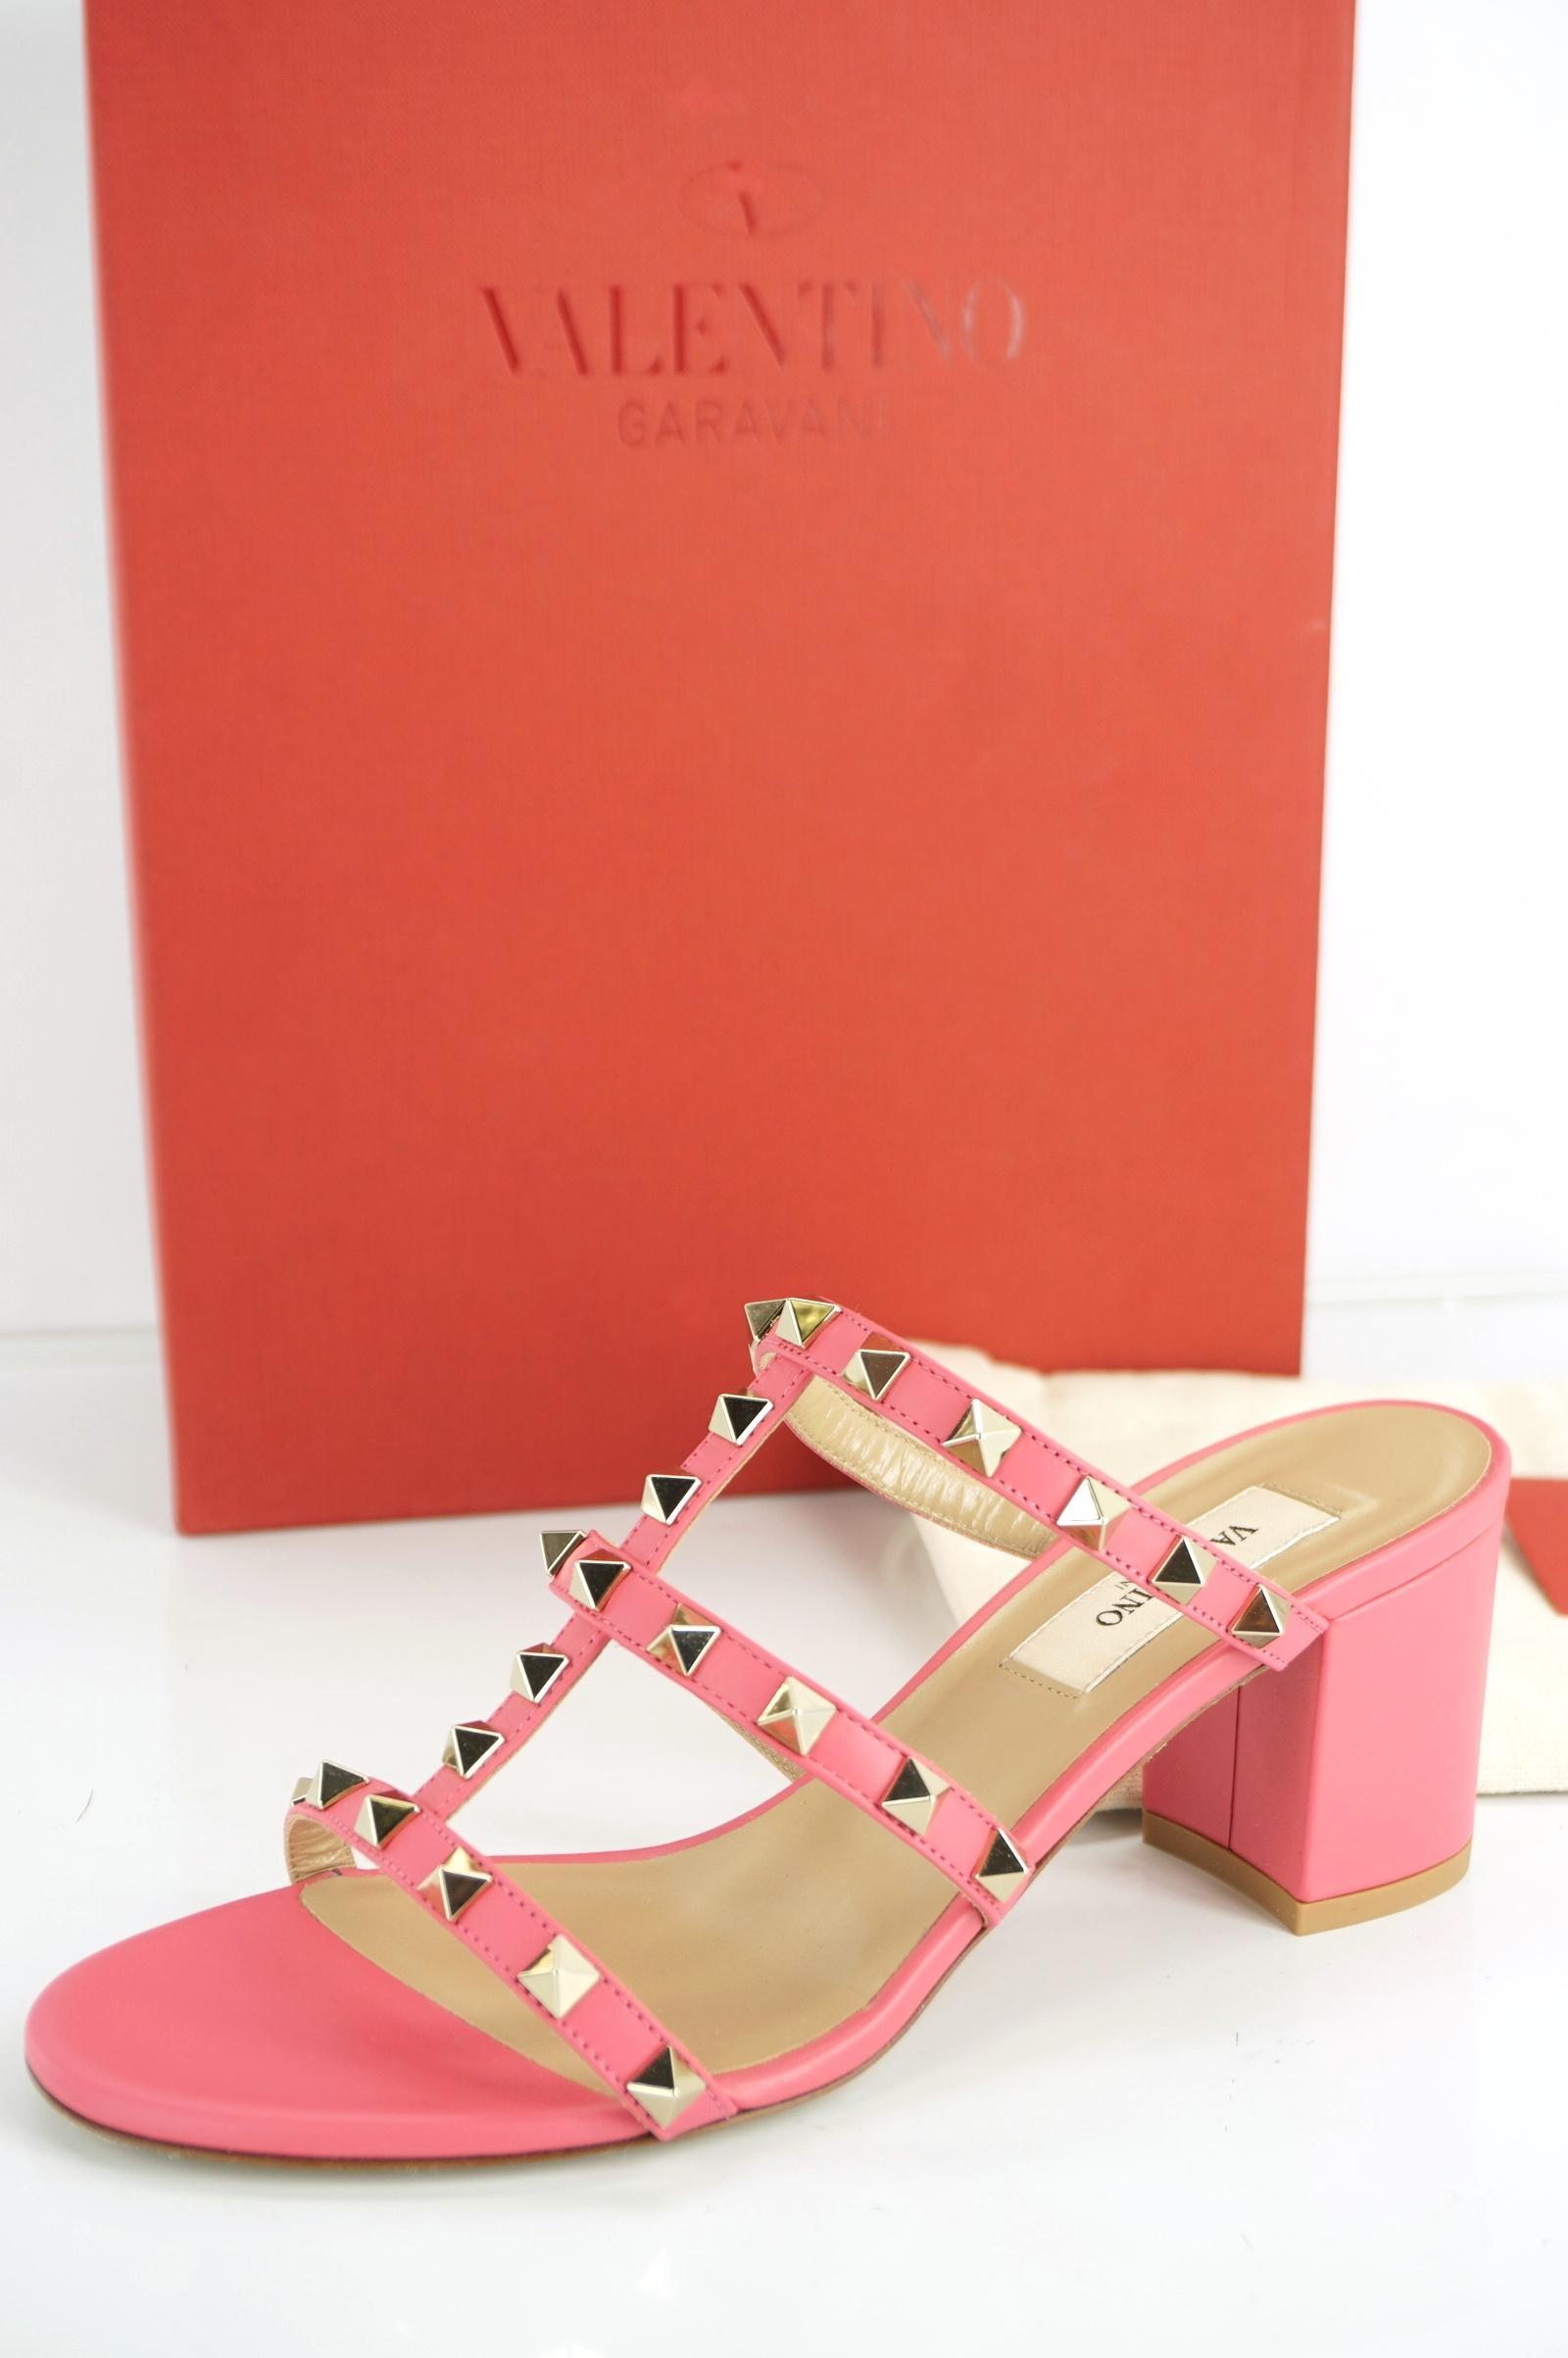 e52db7159 ... Valentino Pink Rockstud City Leather Mule Mule Mule Block Heel Slide  Sandal Pumps Size EU 36.5 ...